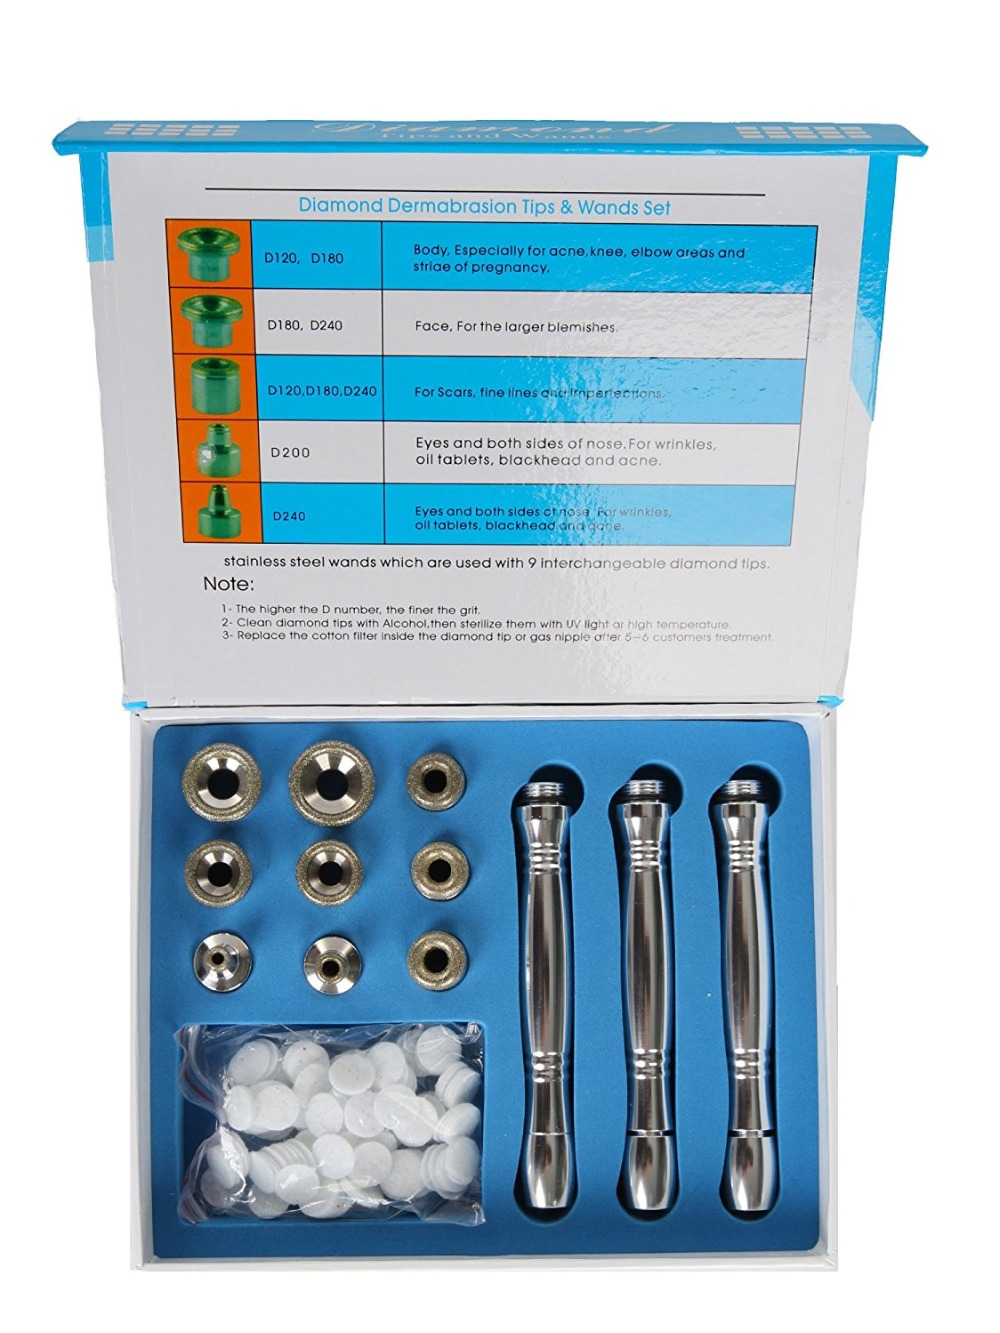 MAKARTT Diamond Microdermabrasion Accessories Replacement Set with Stainless Steel Tips E0375